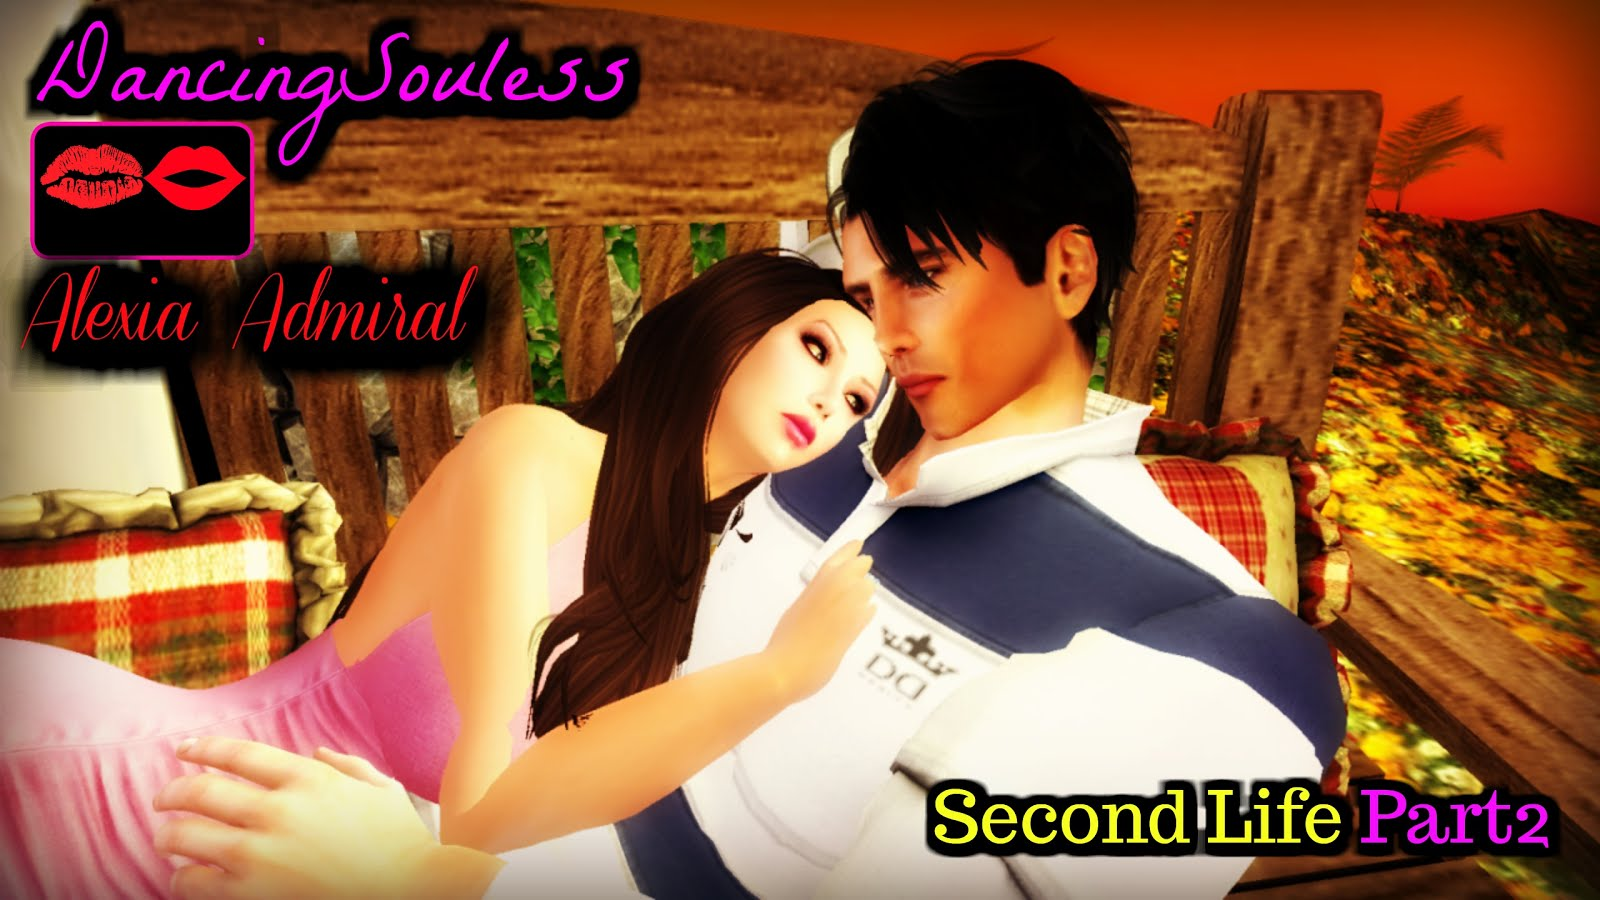 Second Life Part 2